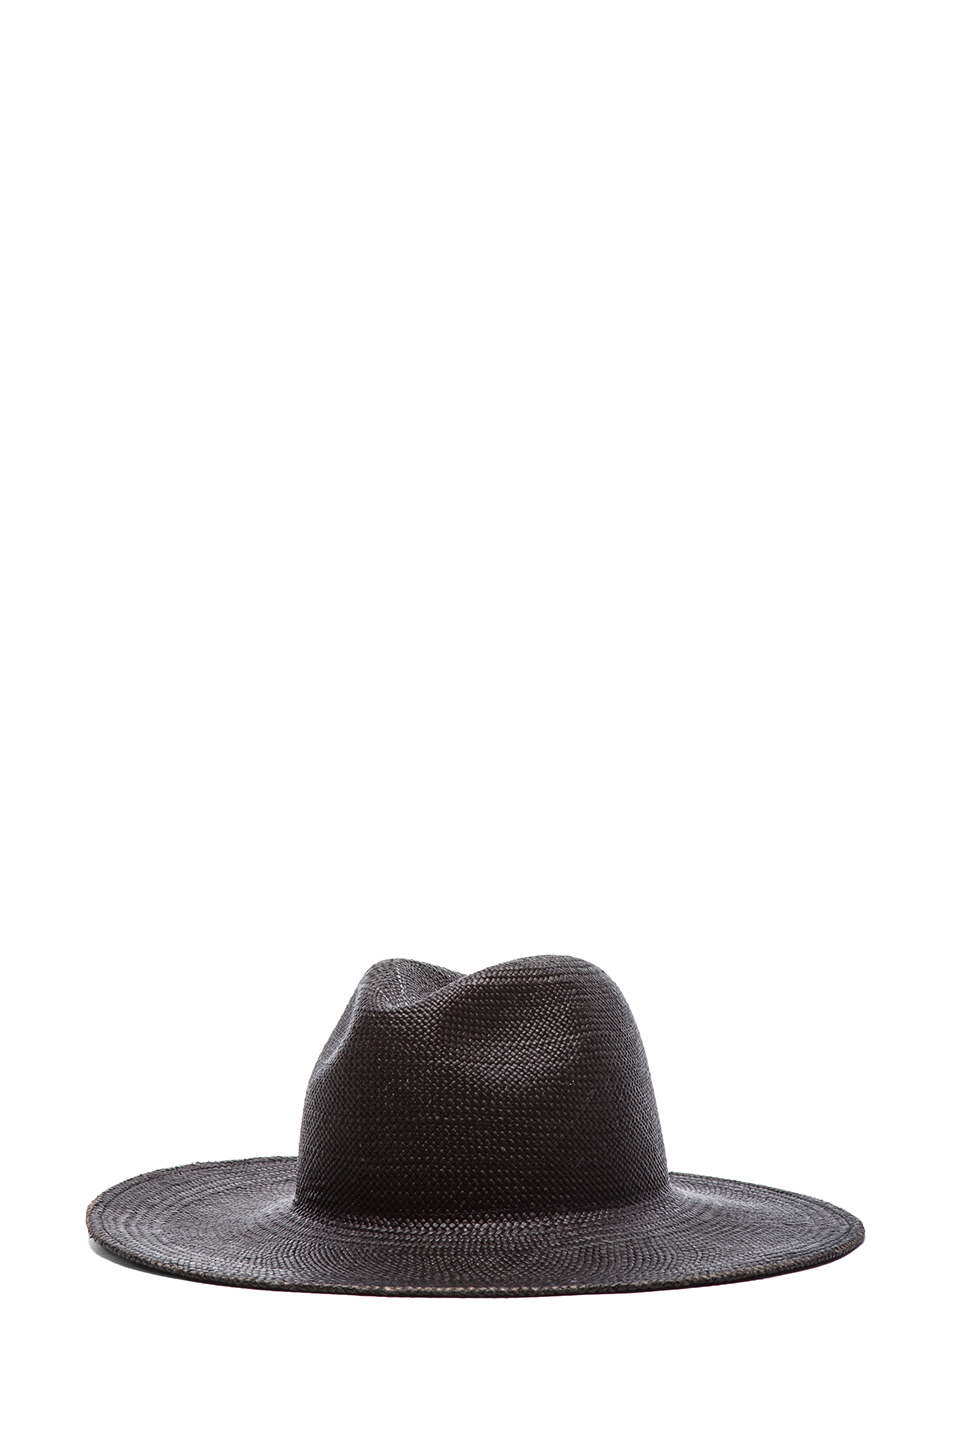 Janessa Leone | Rita Straw Hat in Black